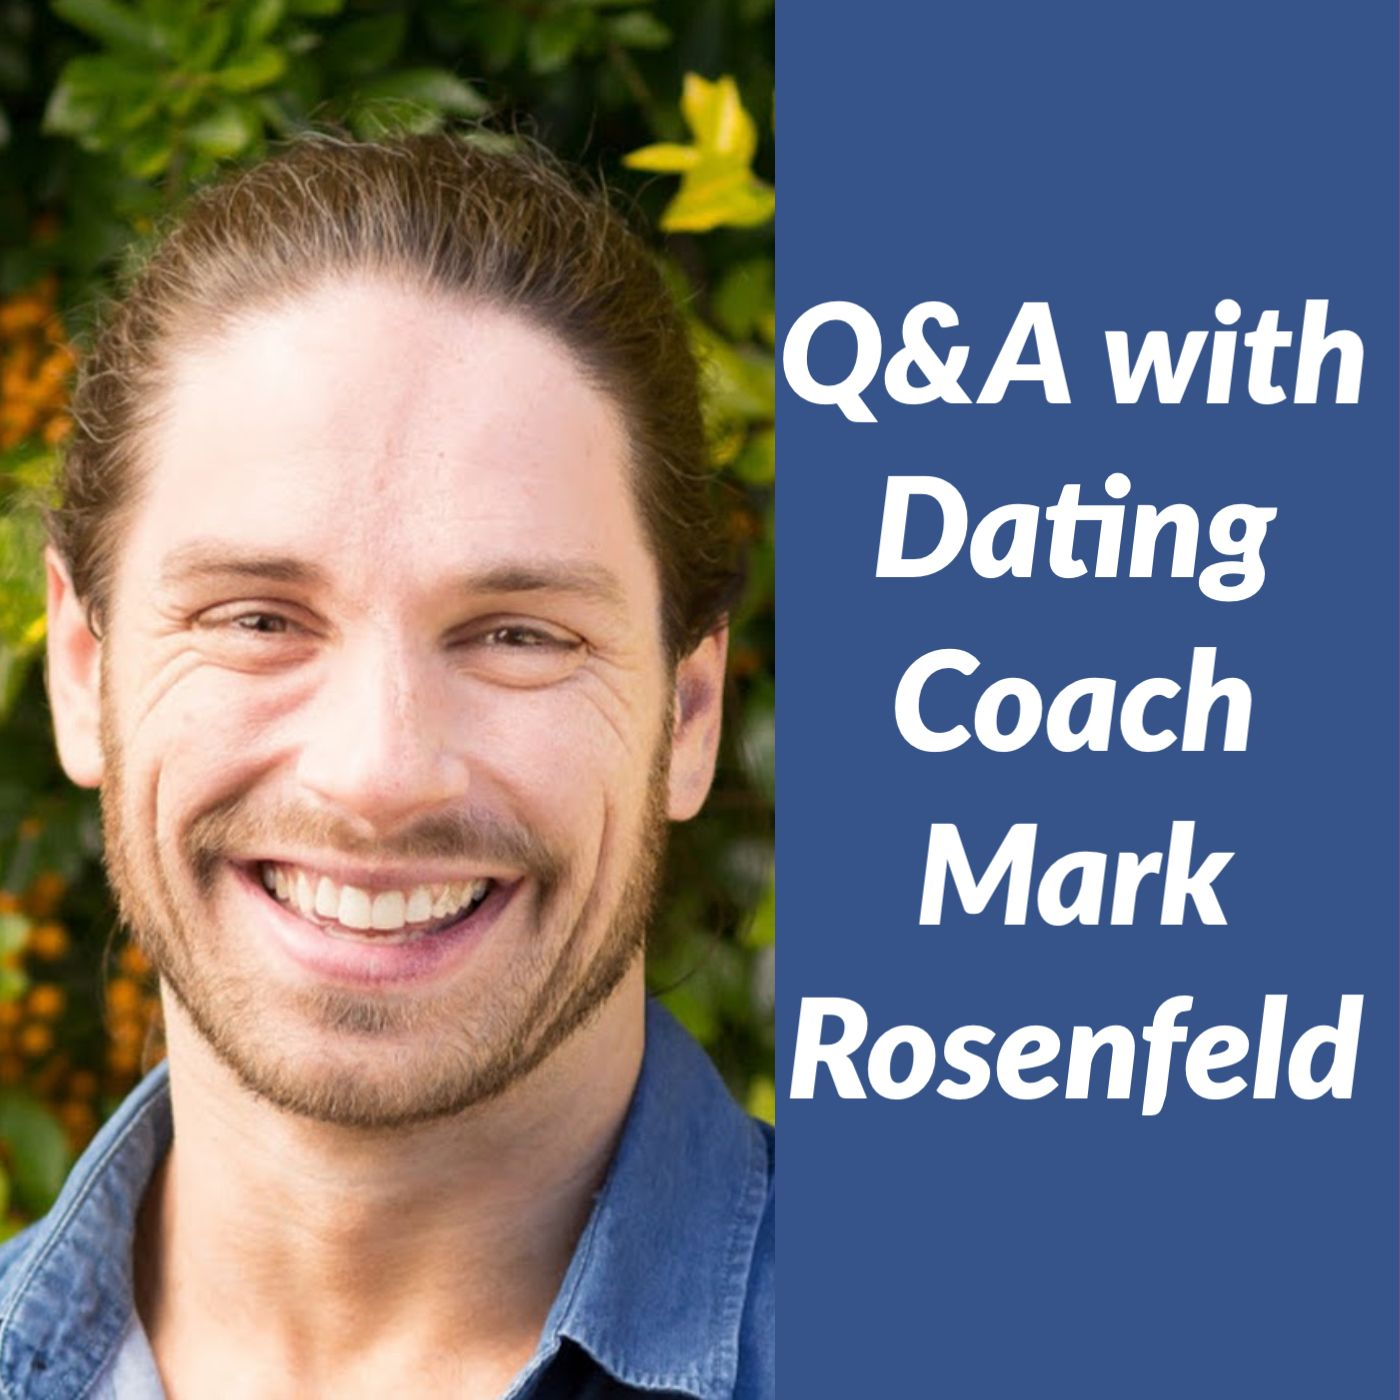 Q&A with Dating Coach Mark Rosenfeld